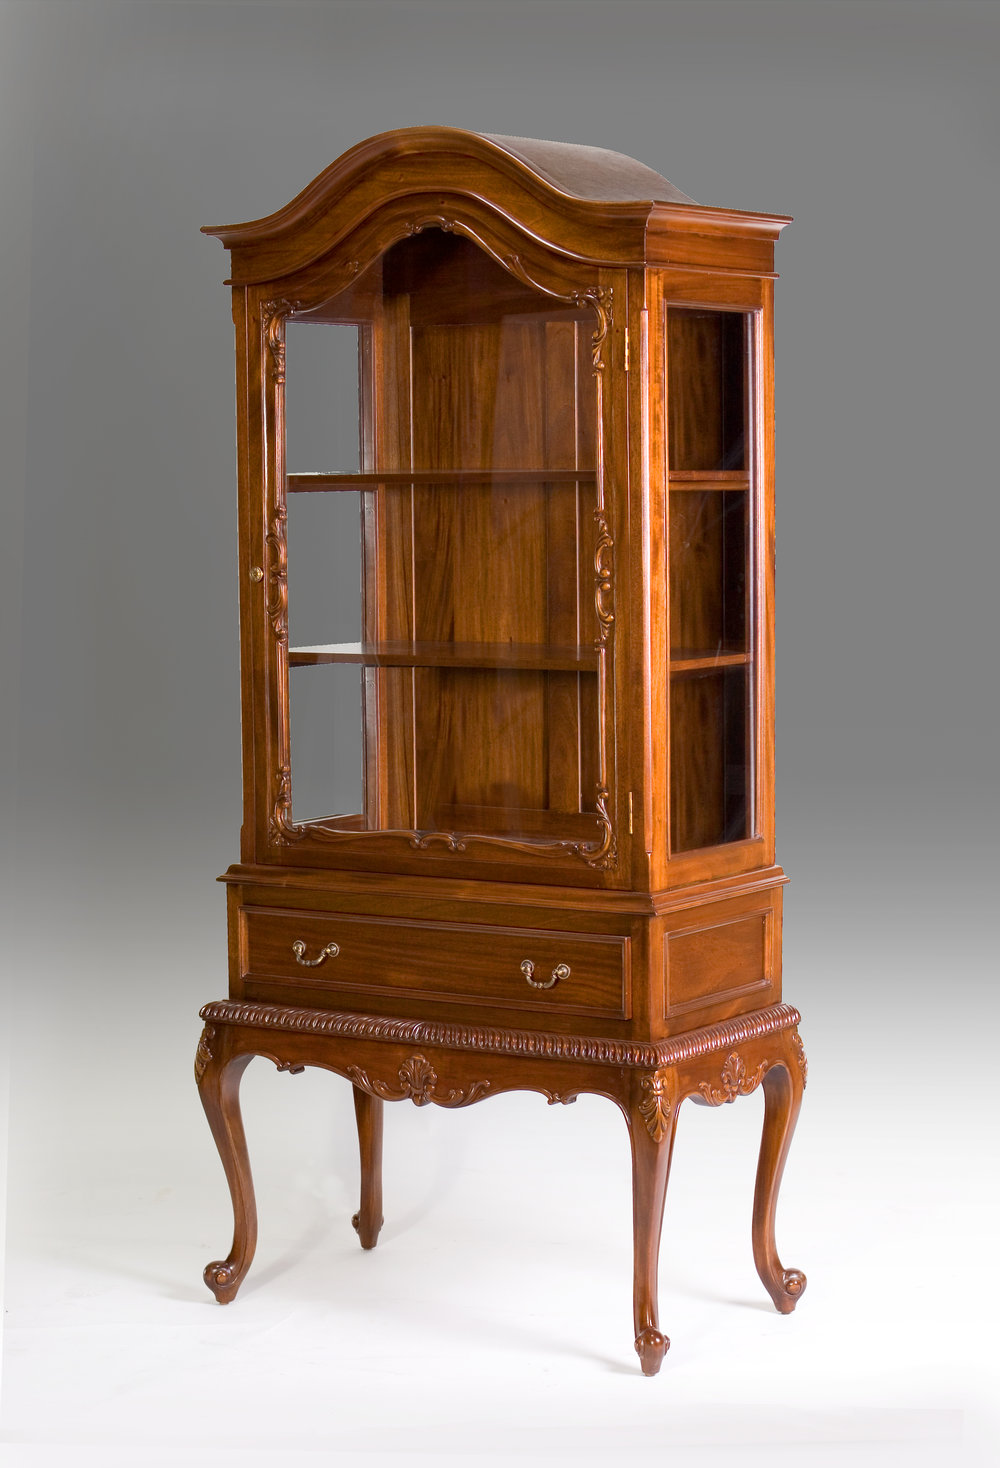 CA005 - Dutch Style Display Showcase Cabinet